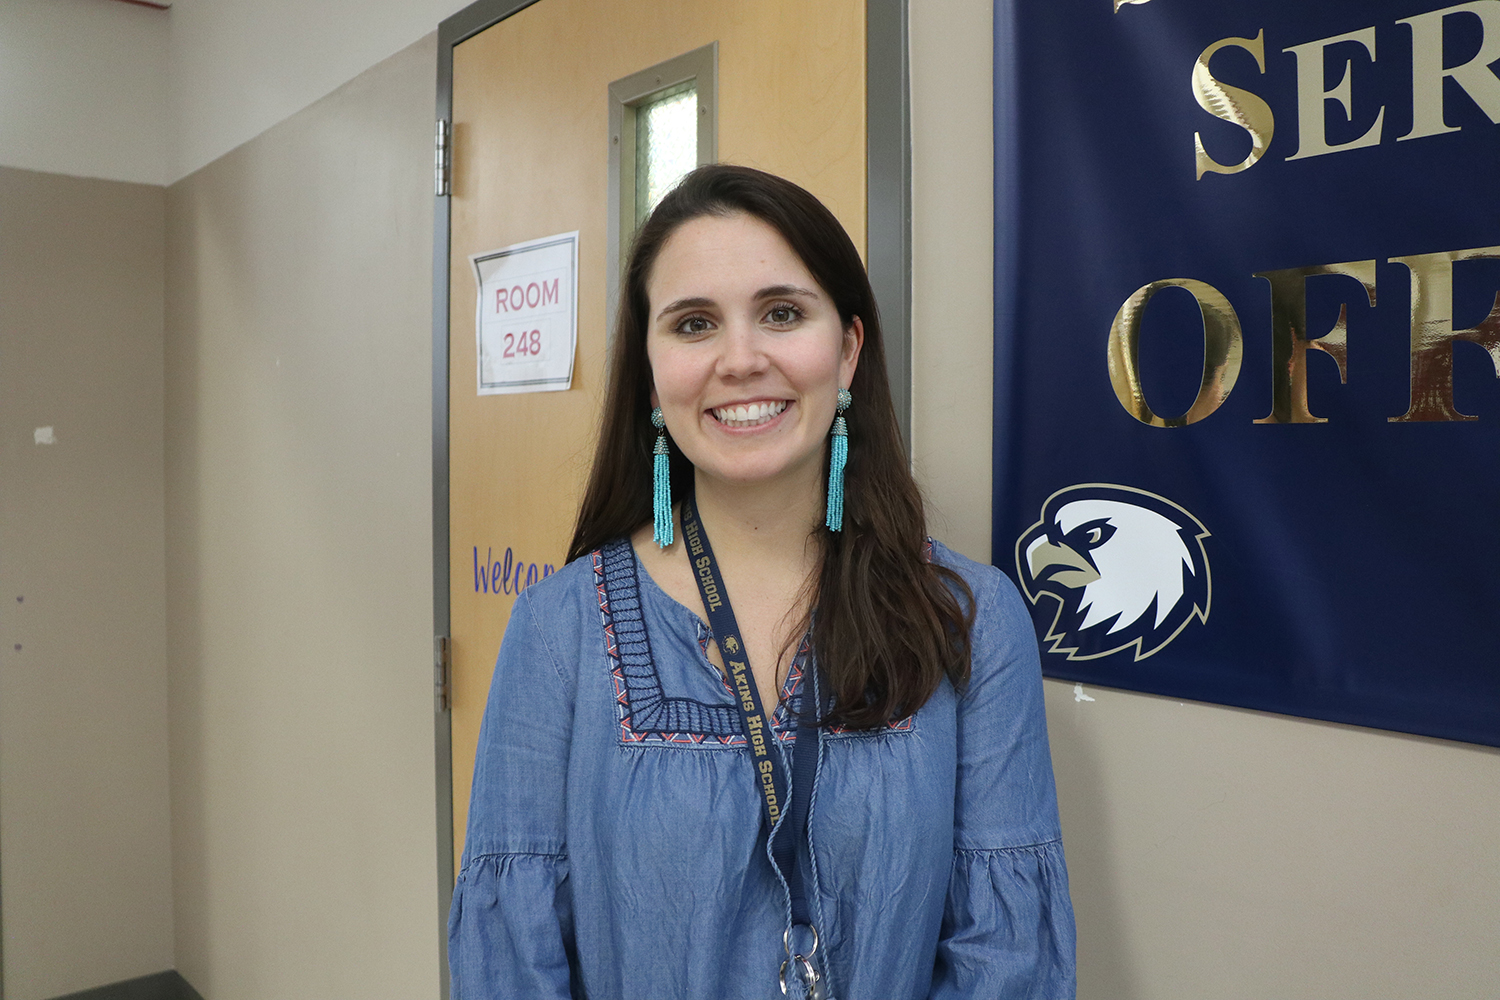 Meg Scamardo, Student Support Services counselor, shares advice about healthy relationships.